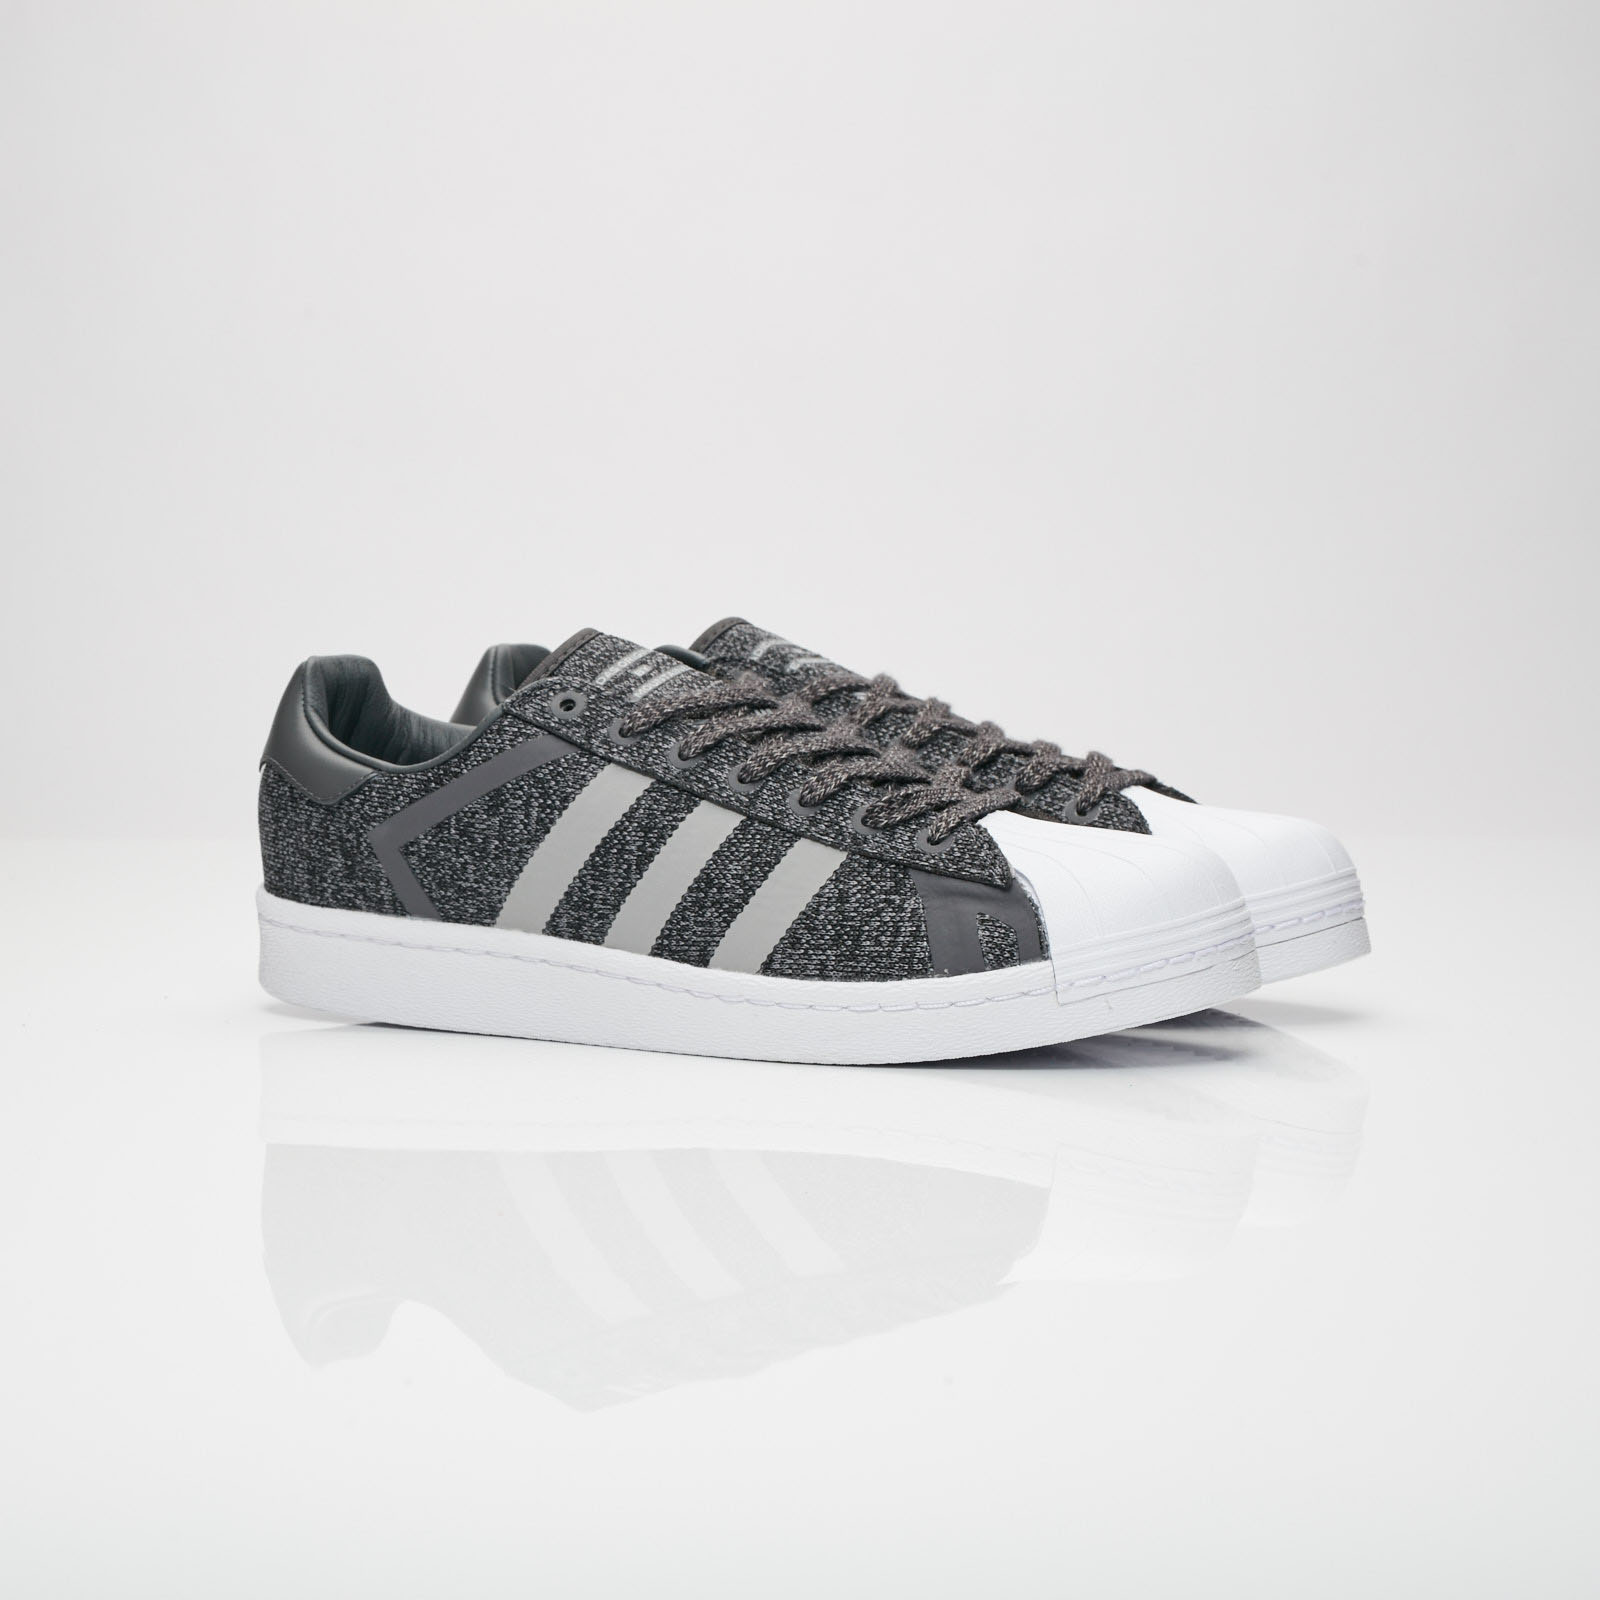 f24d57bbcbb2 adidas Superstar by White Mountaineering - Aq0351 - Sneakersnstuff ...